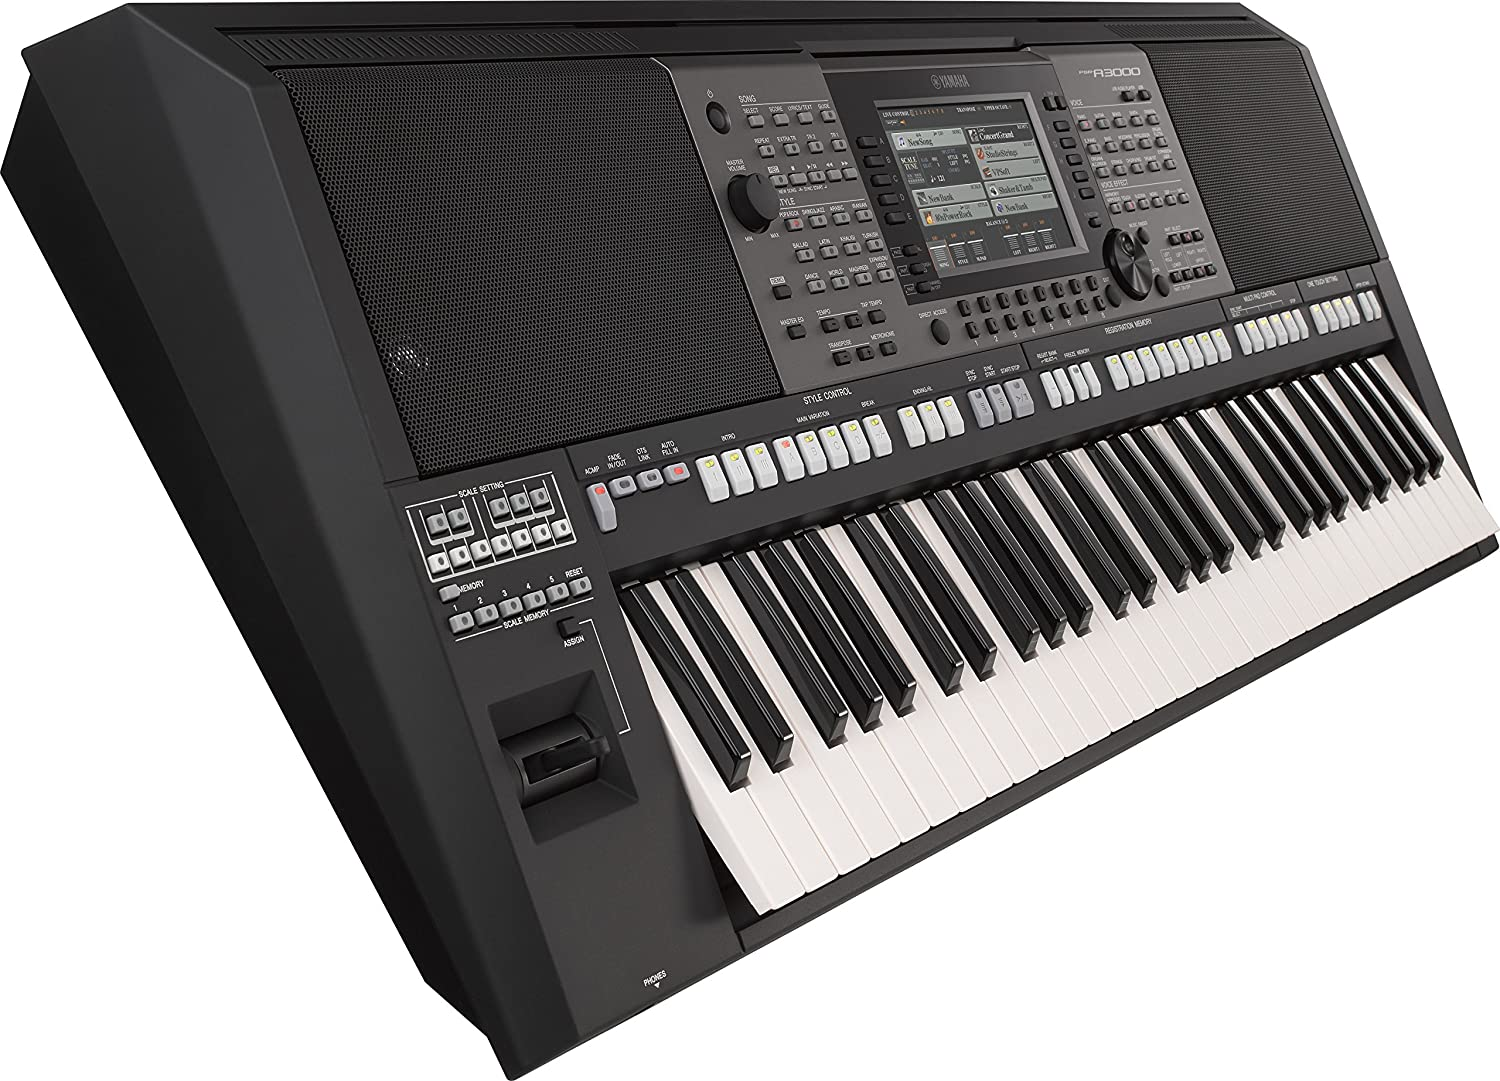 Yamaha Psr A3000 61 Key World Arranger Workstation S970 Musical Instruments